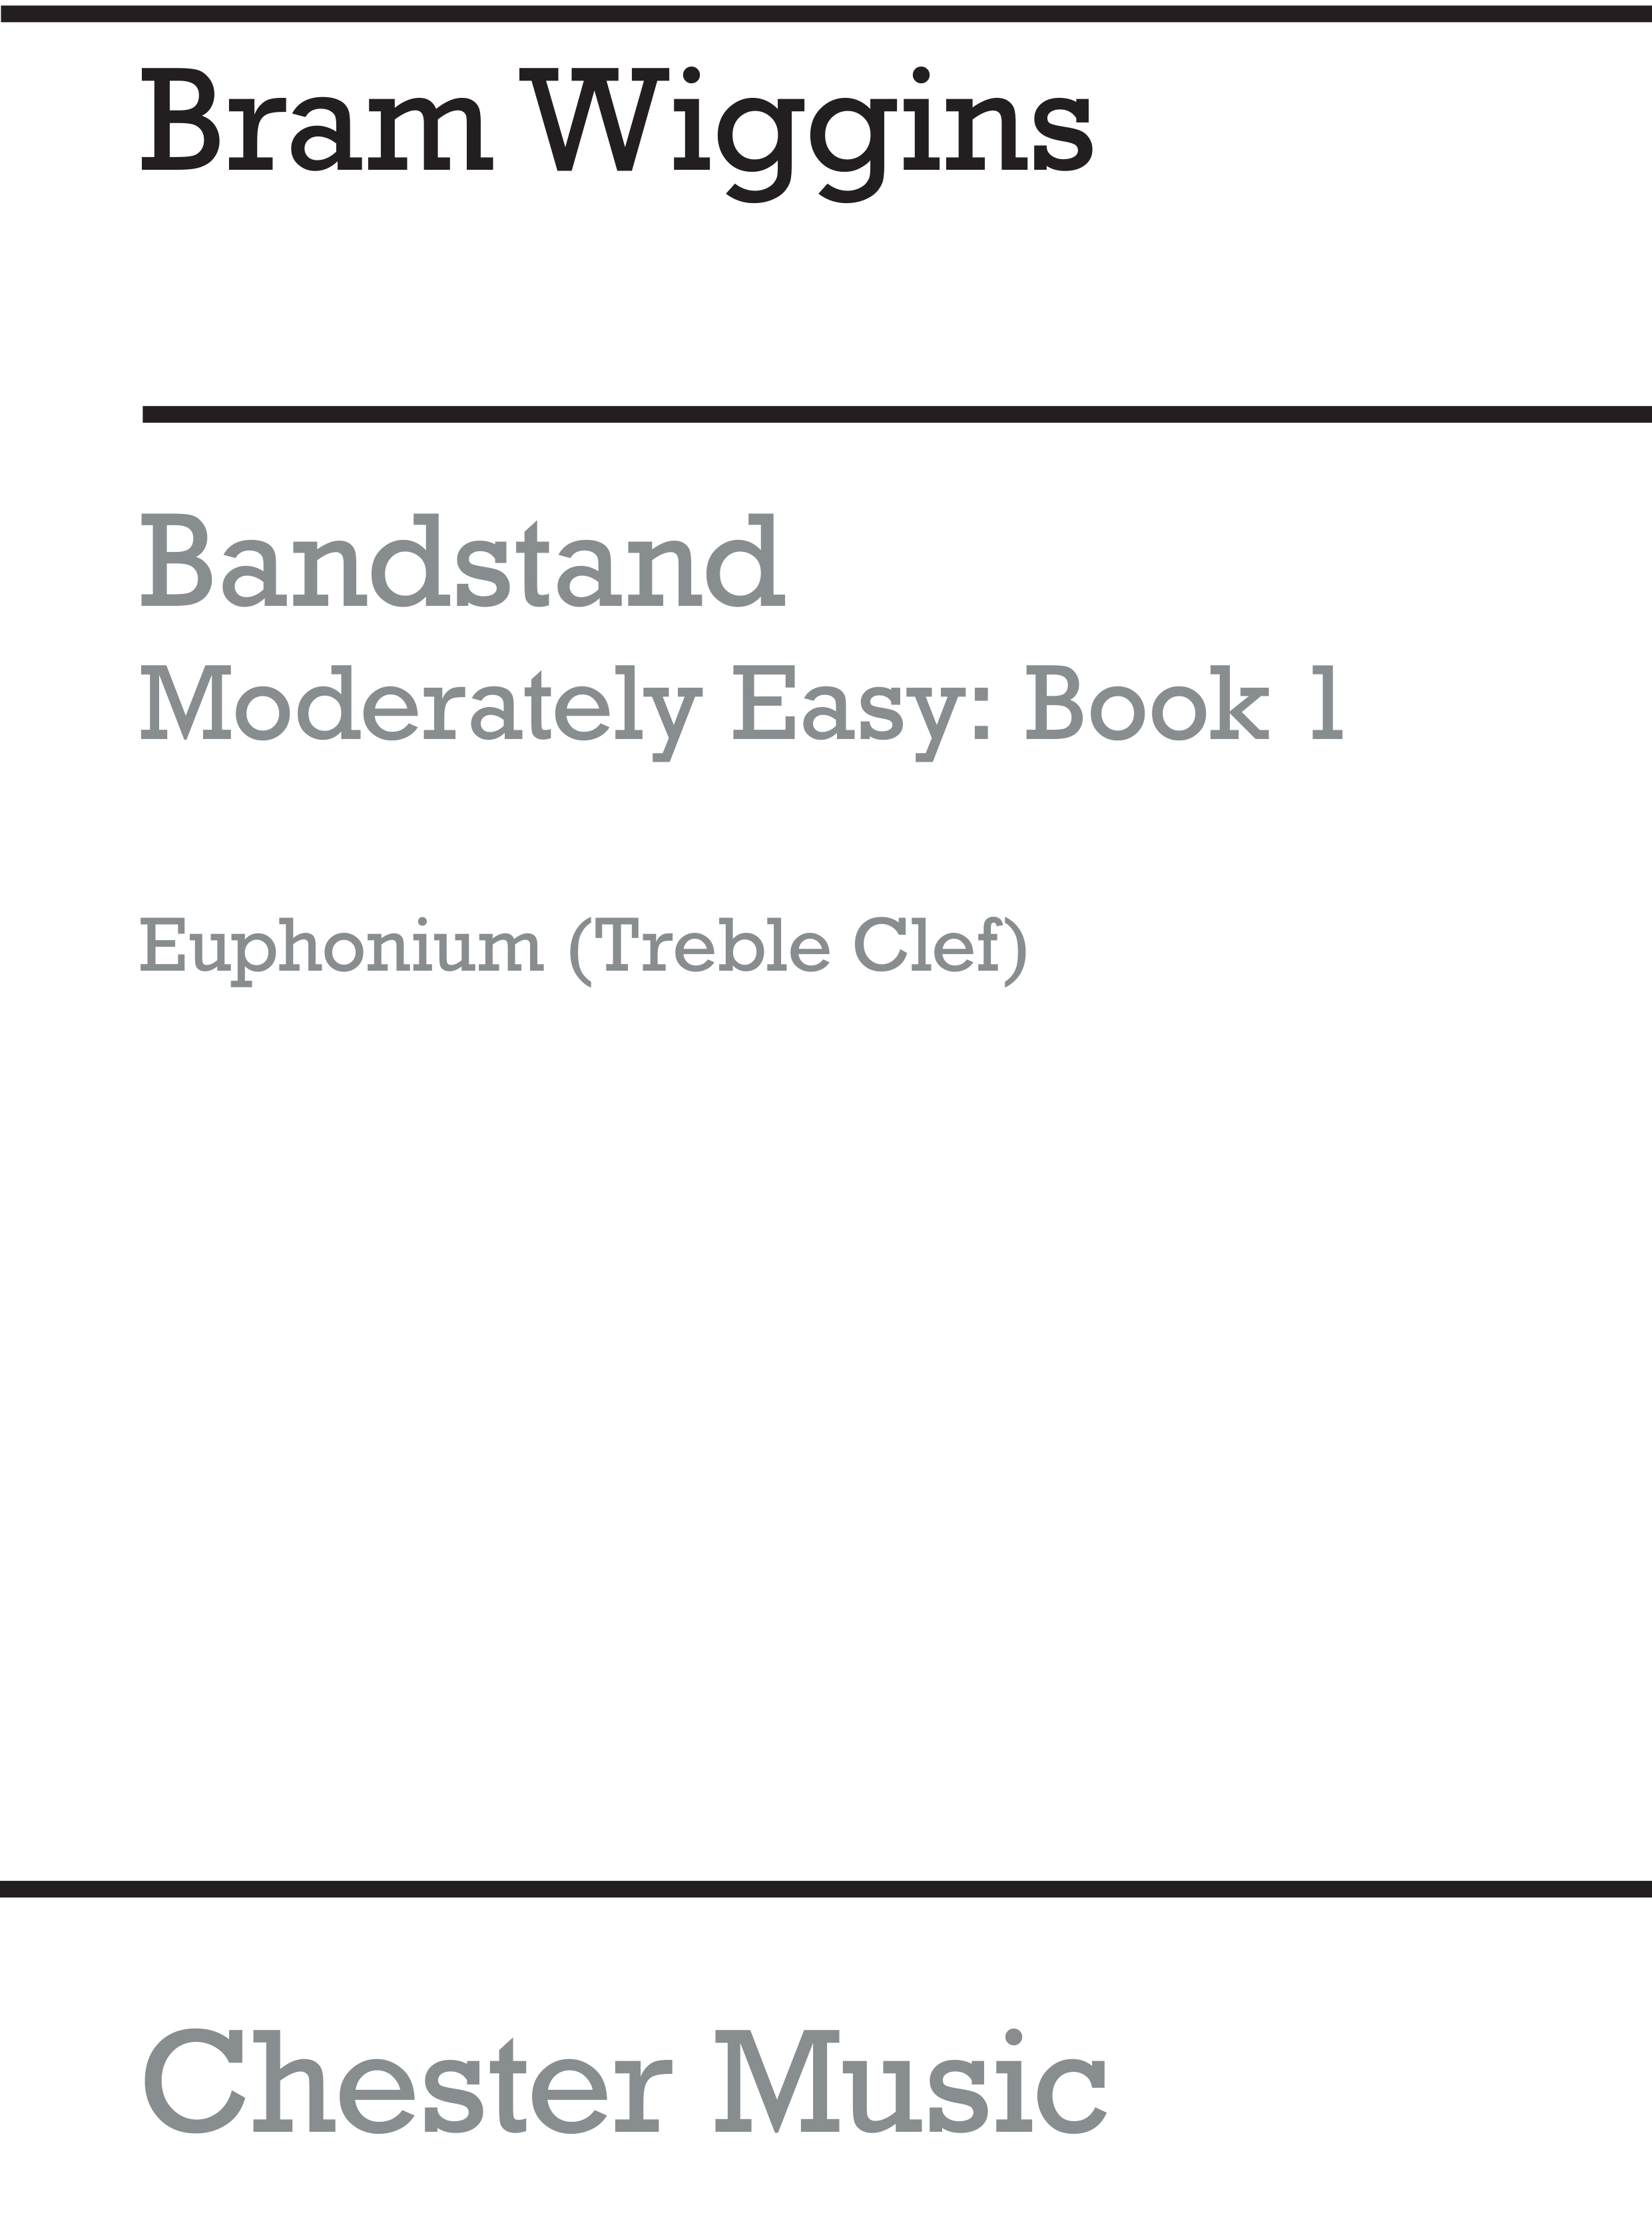 Bram Wiggins: Bandstand Moderately Easy Book 1 (Euphonium TC): Concert Band: